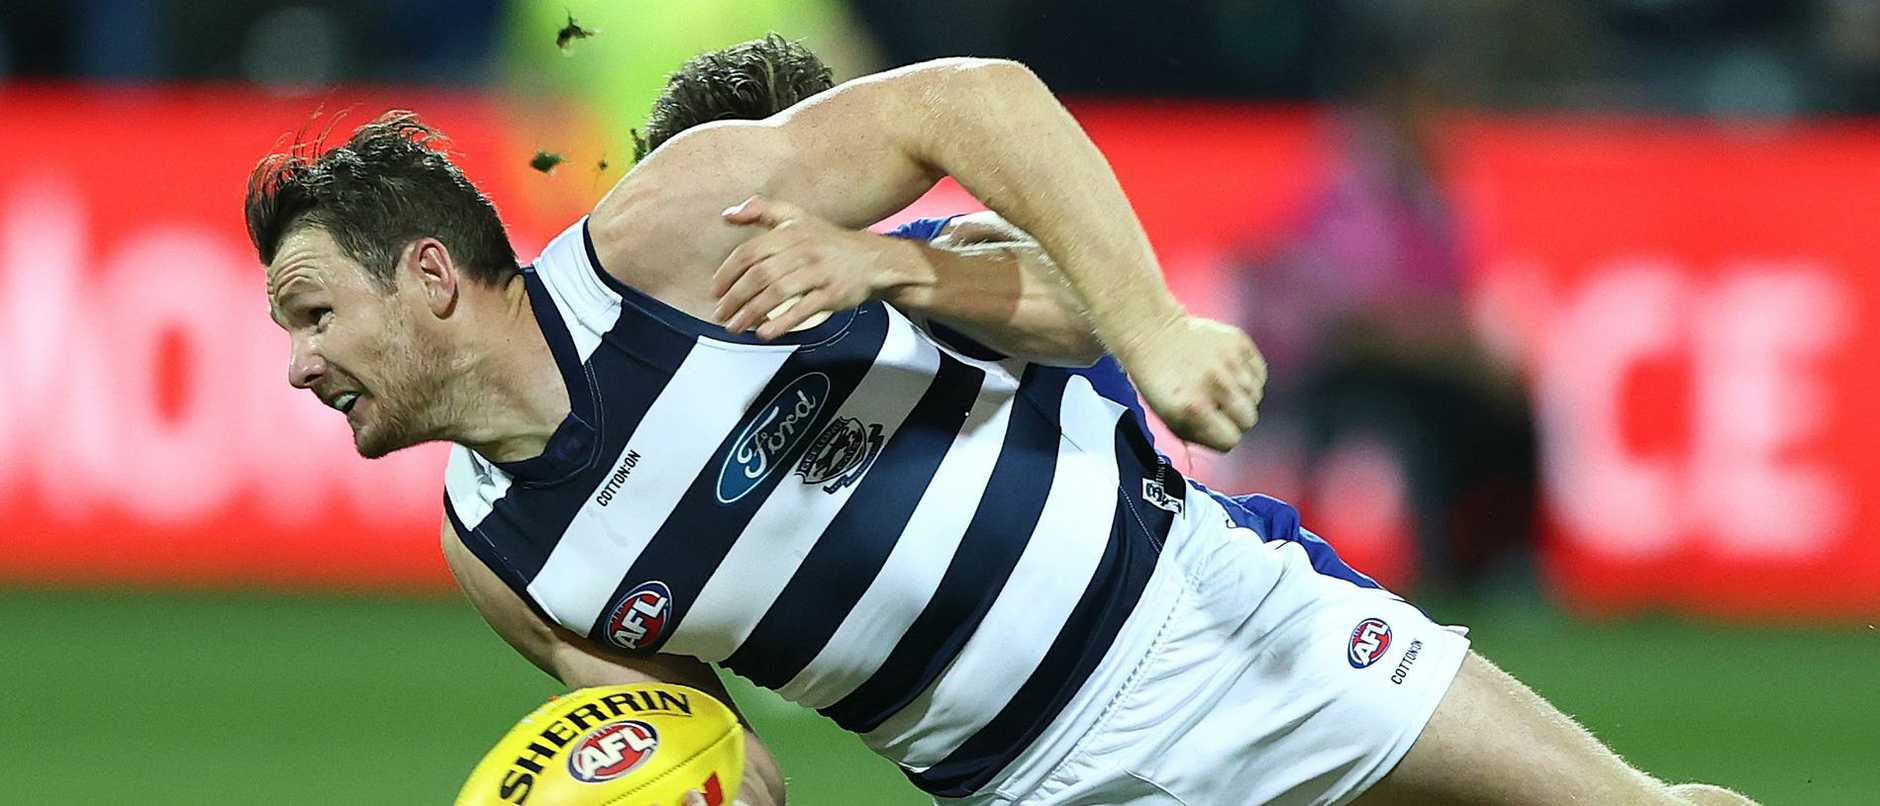 AFL injuries 2021: Patrick Dangerfield to undergo surgery on his ankle